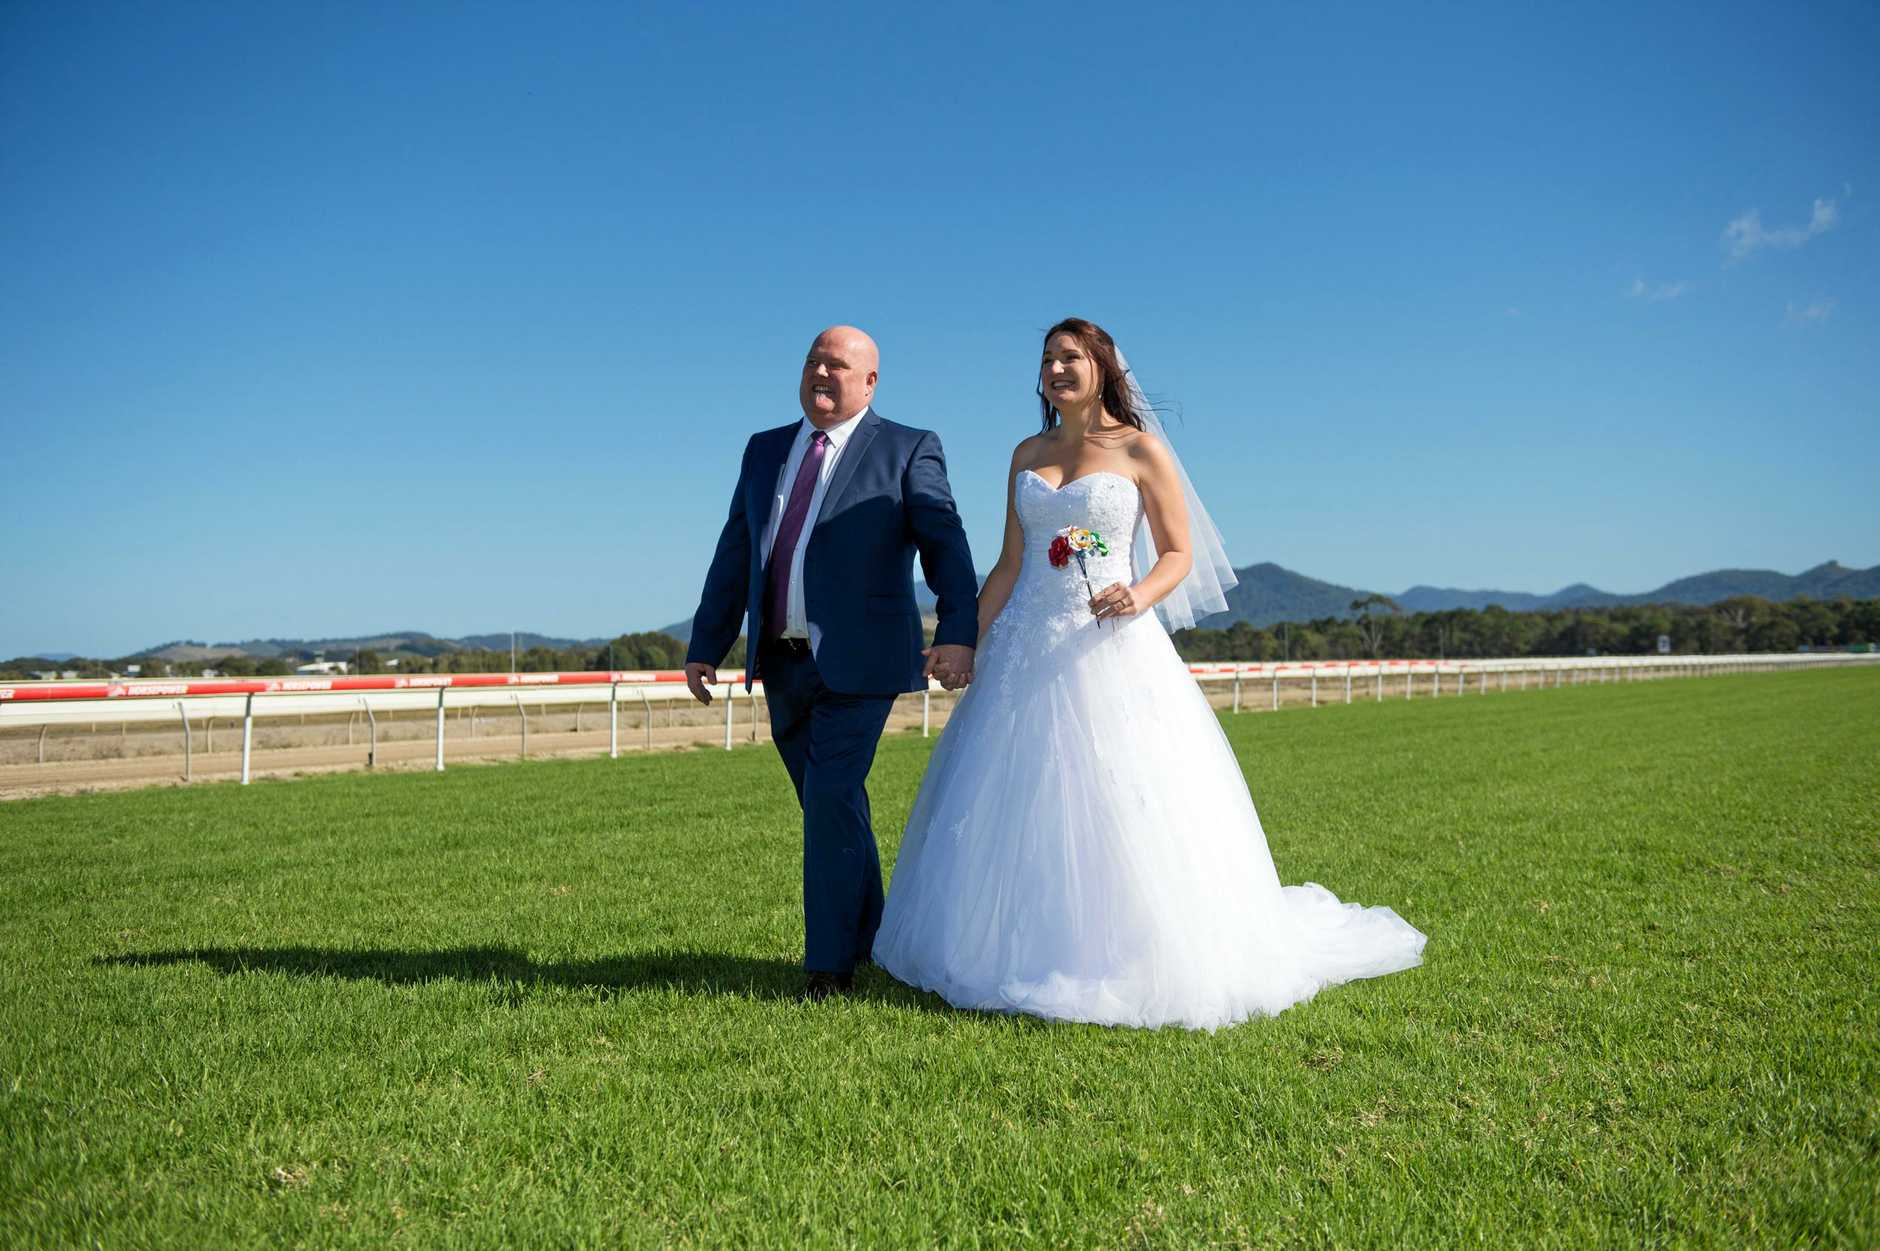 Married at the track Bob Foster and Renee Herbert.